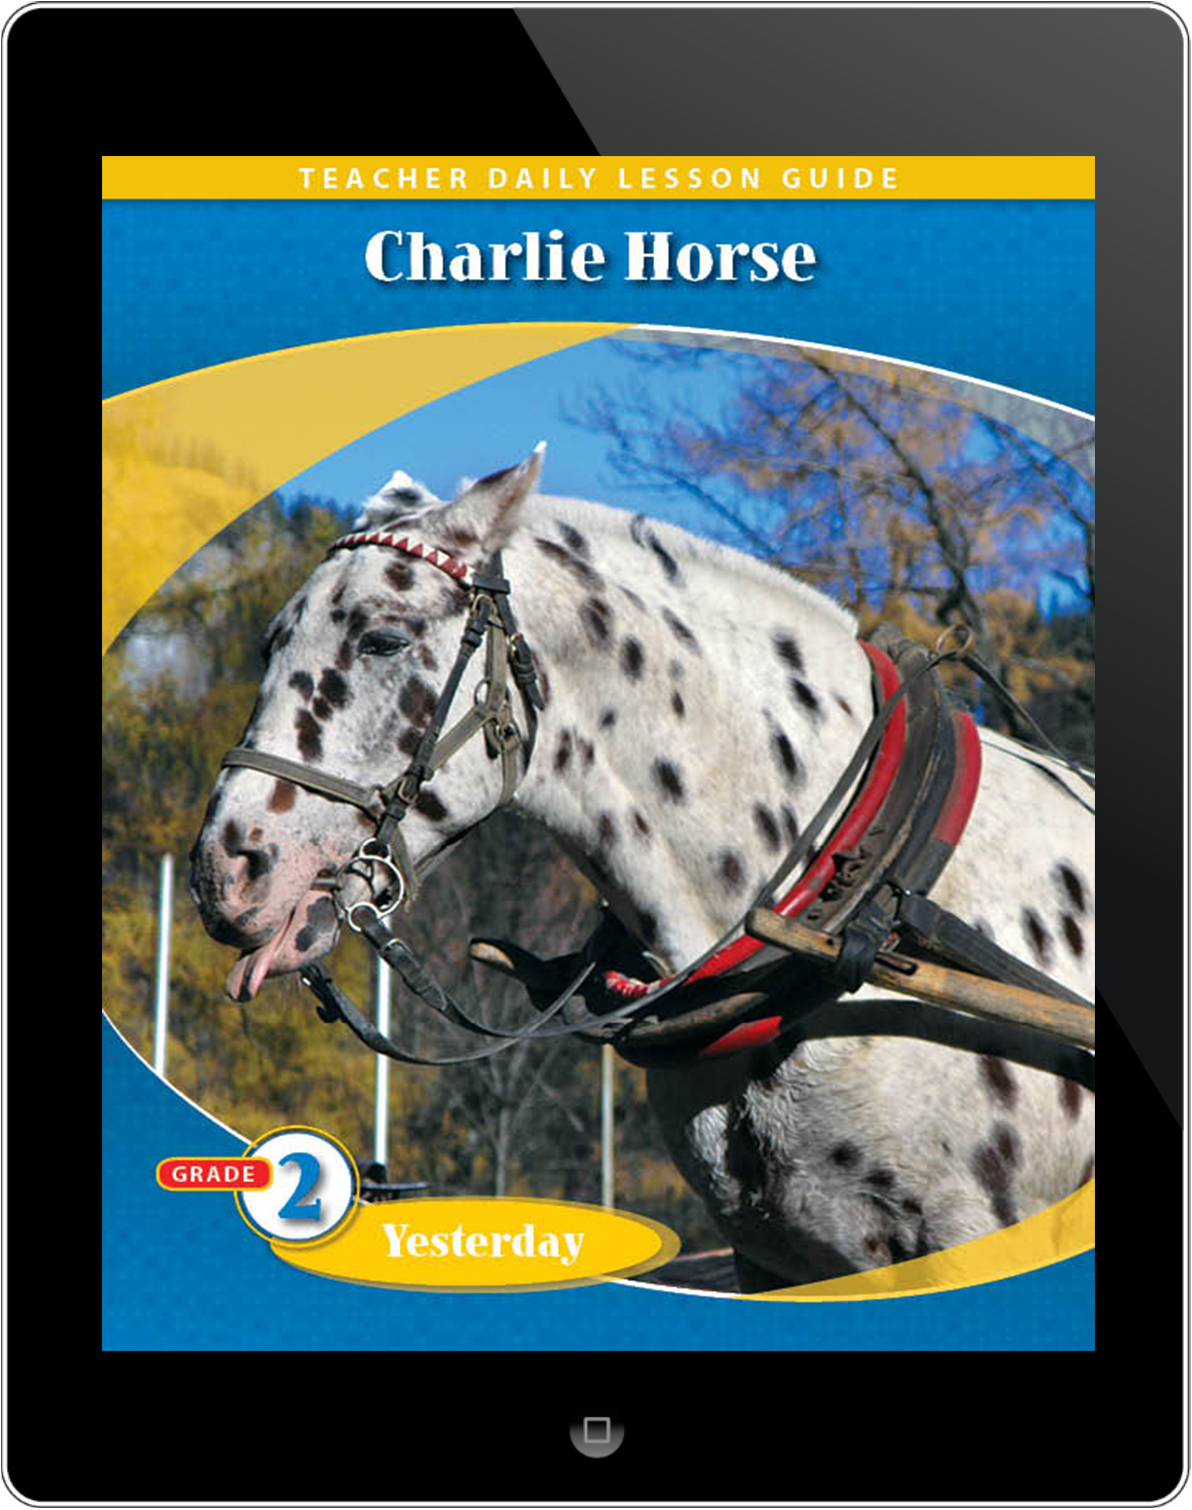 Pathways2.0 Grade 2 Yesterday Unit: Charlie Horse Daily Lesson Guide 5 Year License